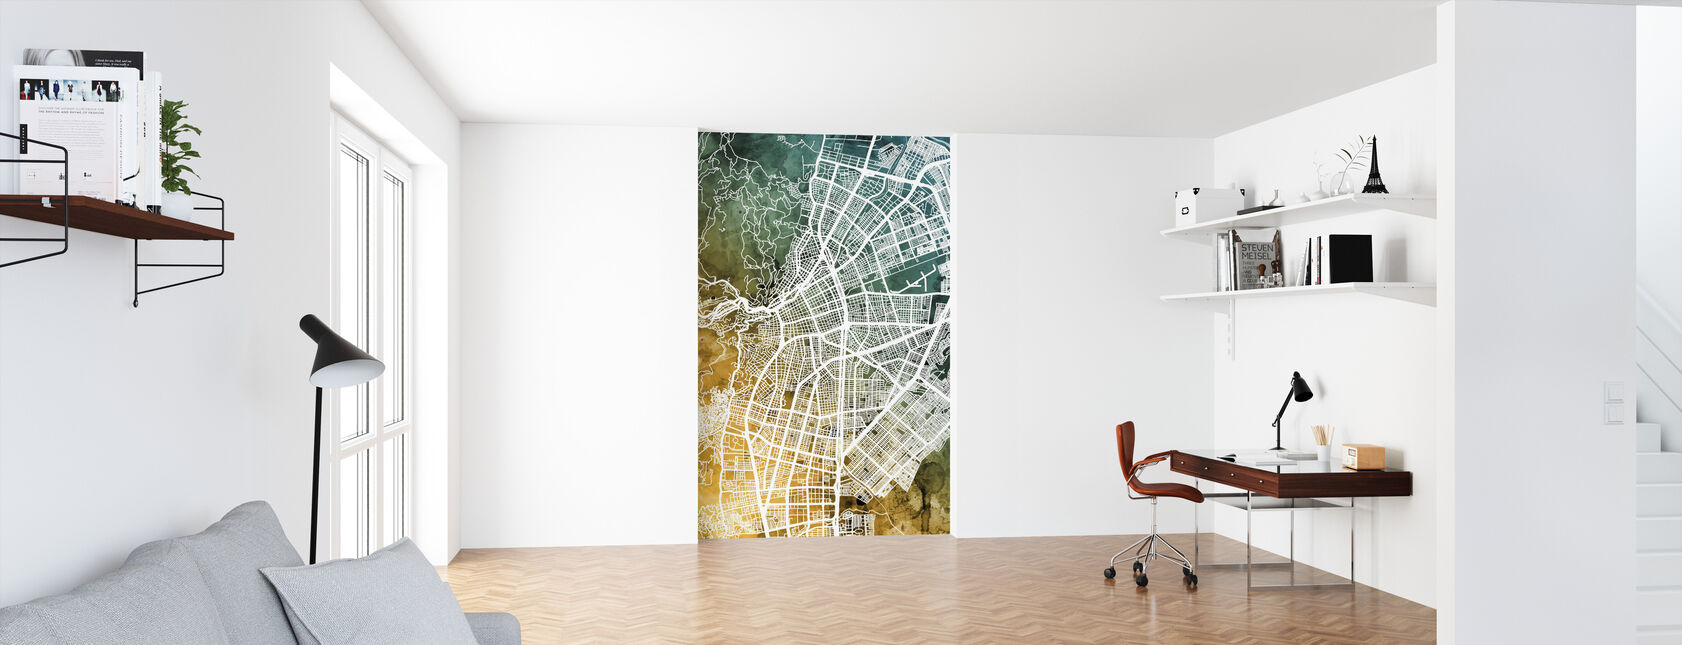 Cali Colombia City Map - Wallpaper - Office